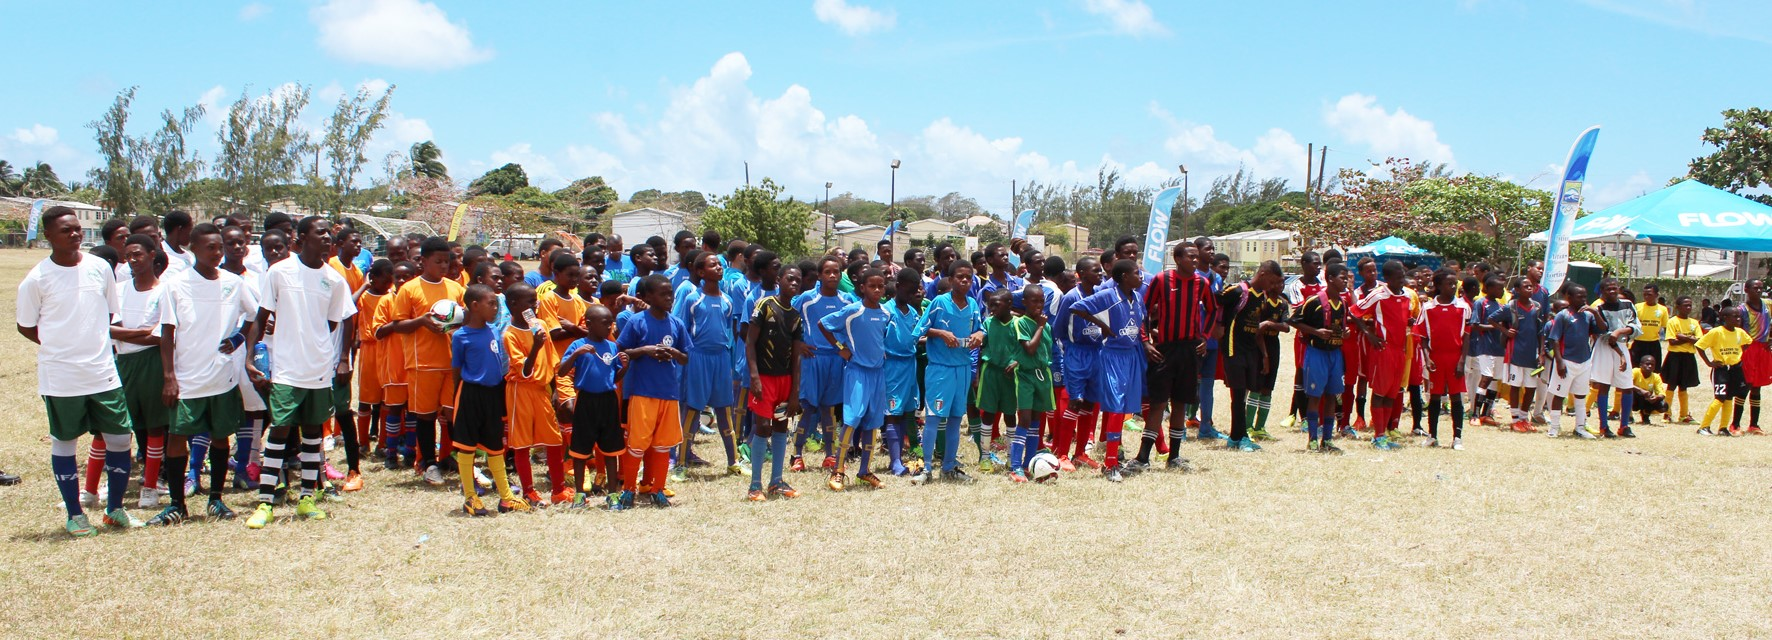 Barbados Celebrates International Day of Sport for Development and Peace